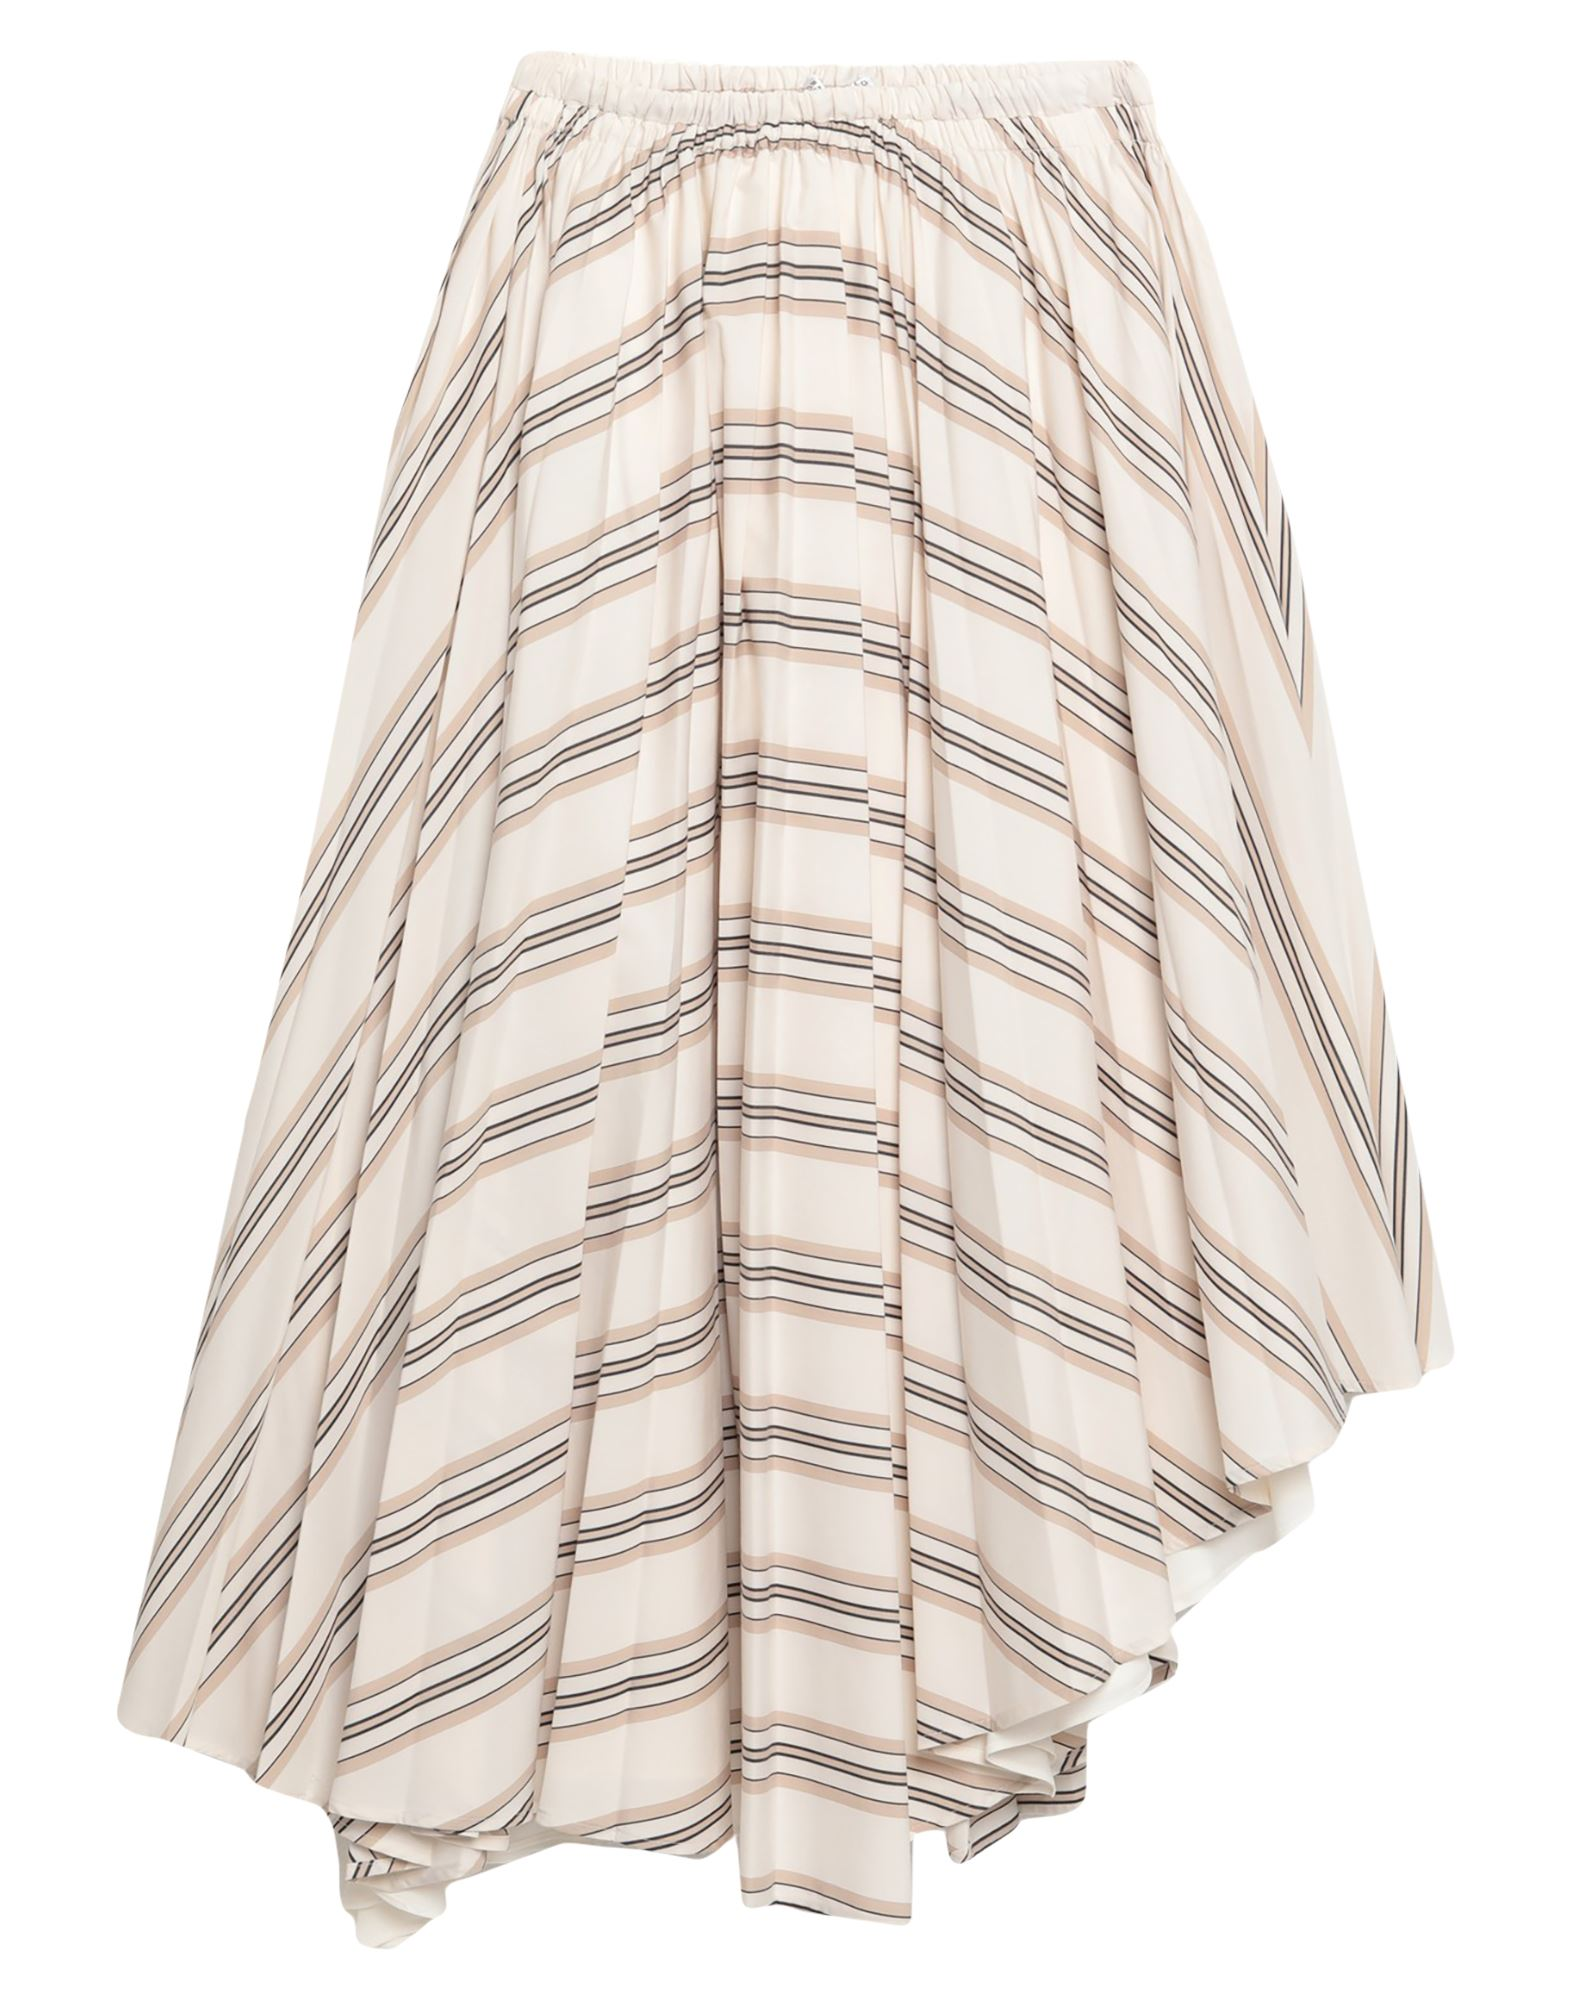 BRUNELLO CUCINELLI Knee length skirts. contains non-textile parts of animal origin, plain weave, no appliqués, stripes, no pockets, no fastening, elasticized waist, fully lined. 65% Polyester, 35% Cotton